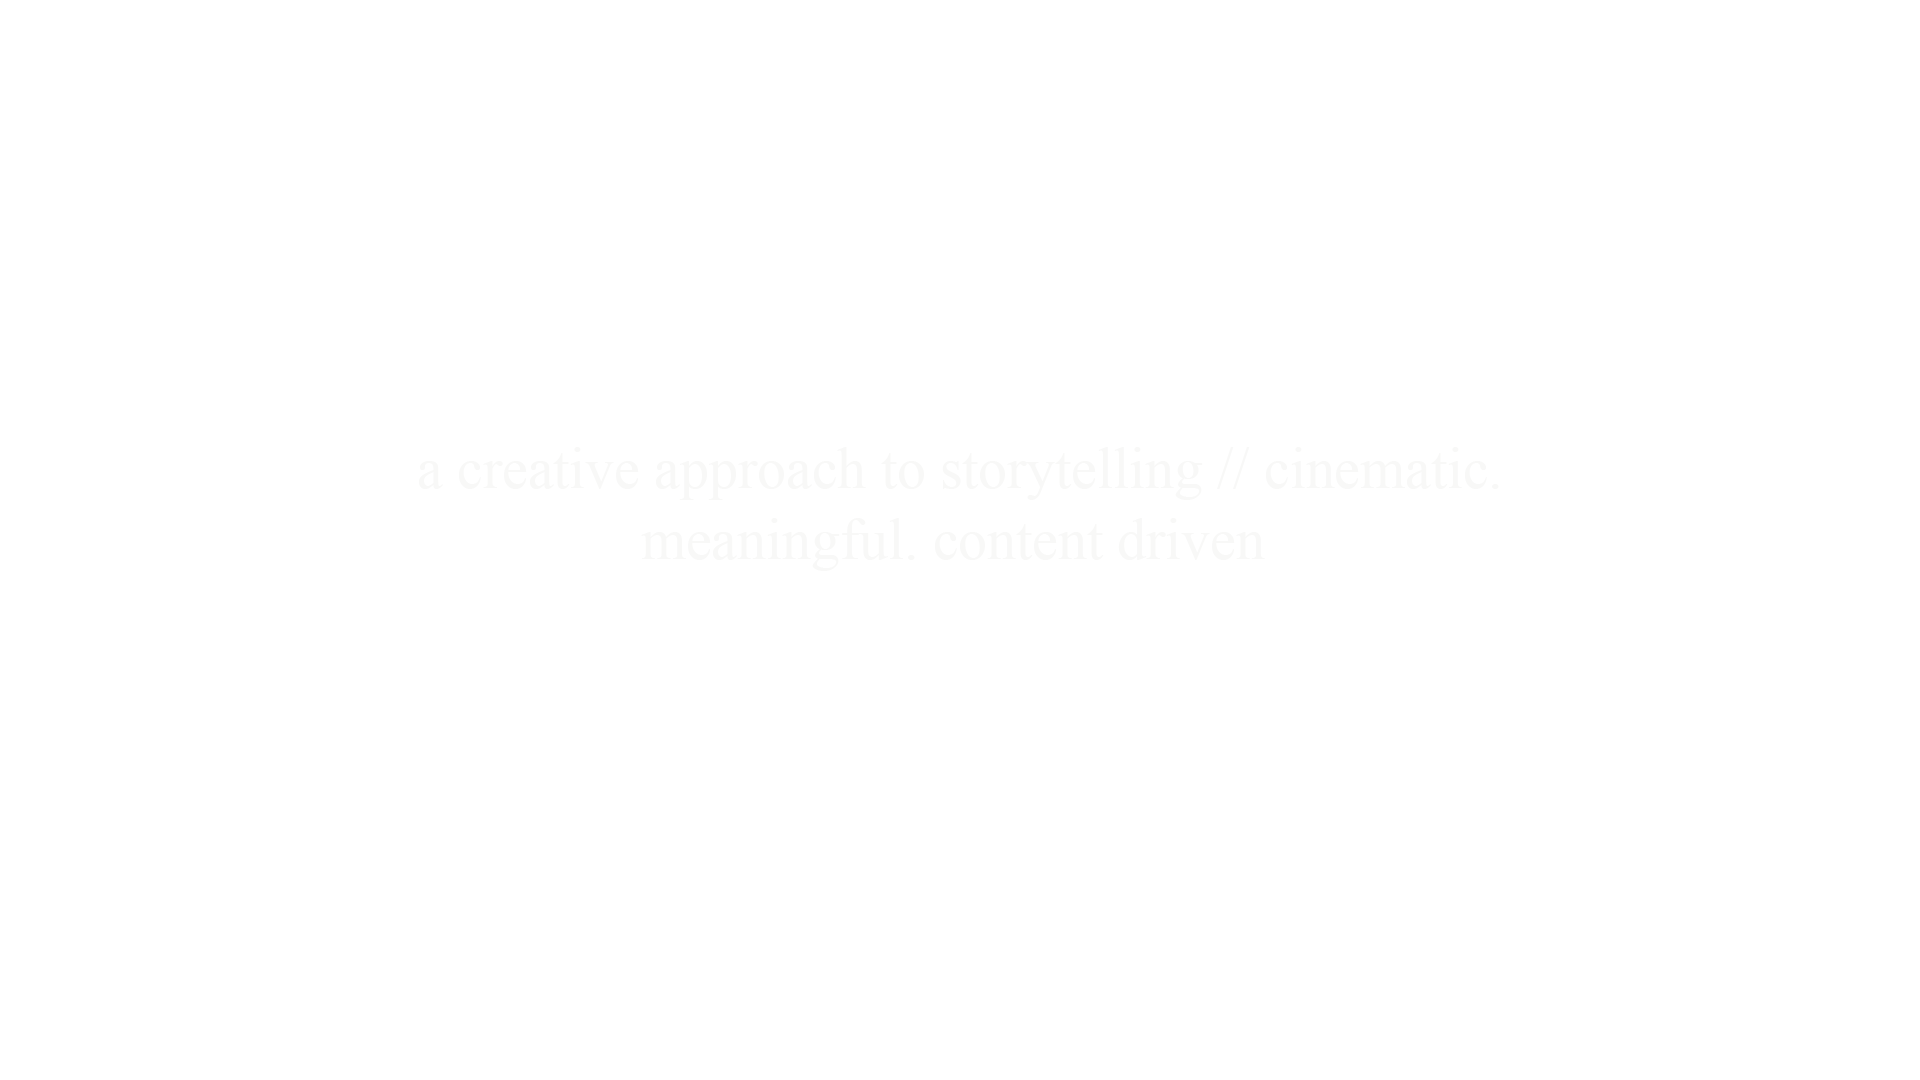 creative approach to storytelling 2.png